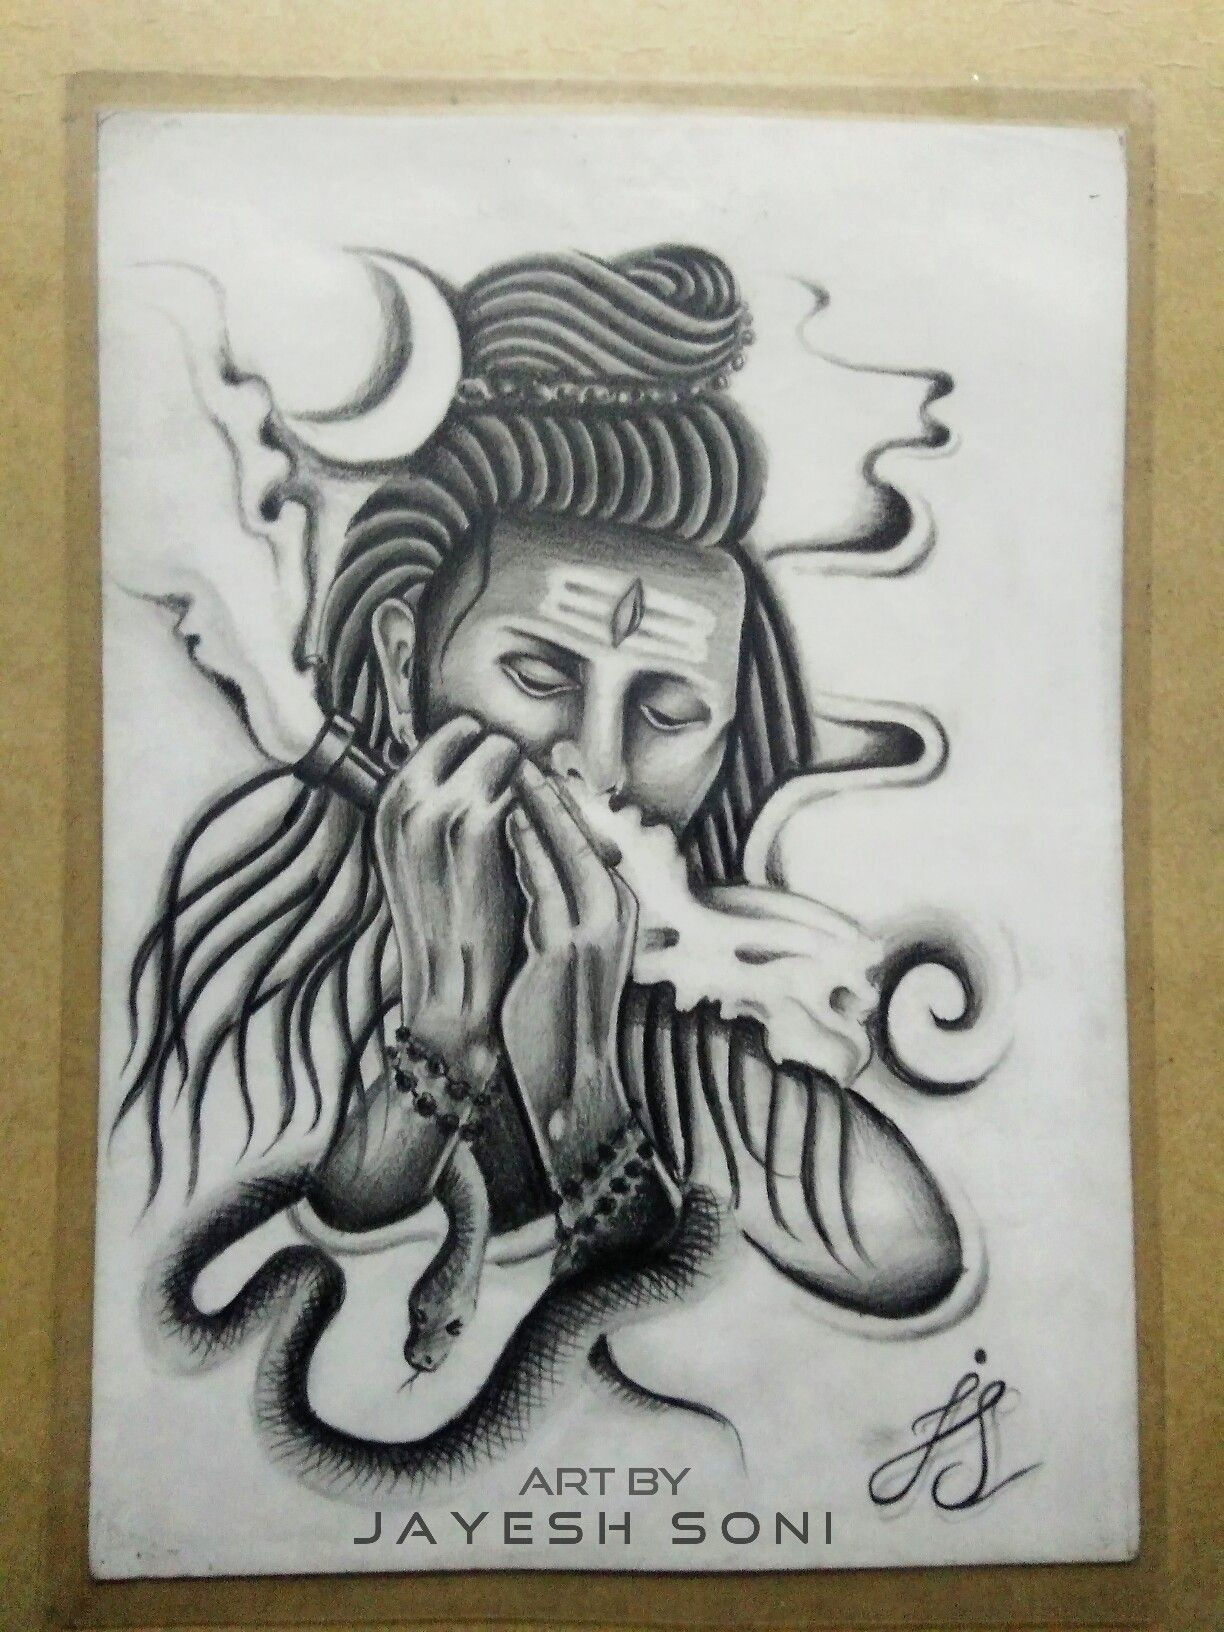 Work 2014 tittle smoking shiva medium pencil drawing art by jayesh soni hope you all like this shiva smoke smoking snake moon art artwork